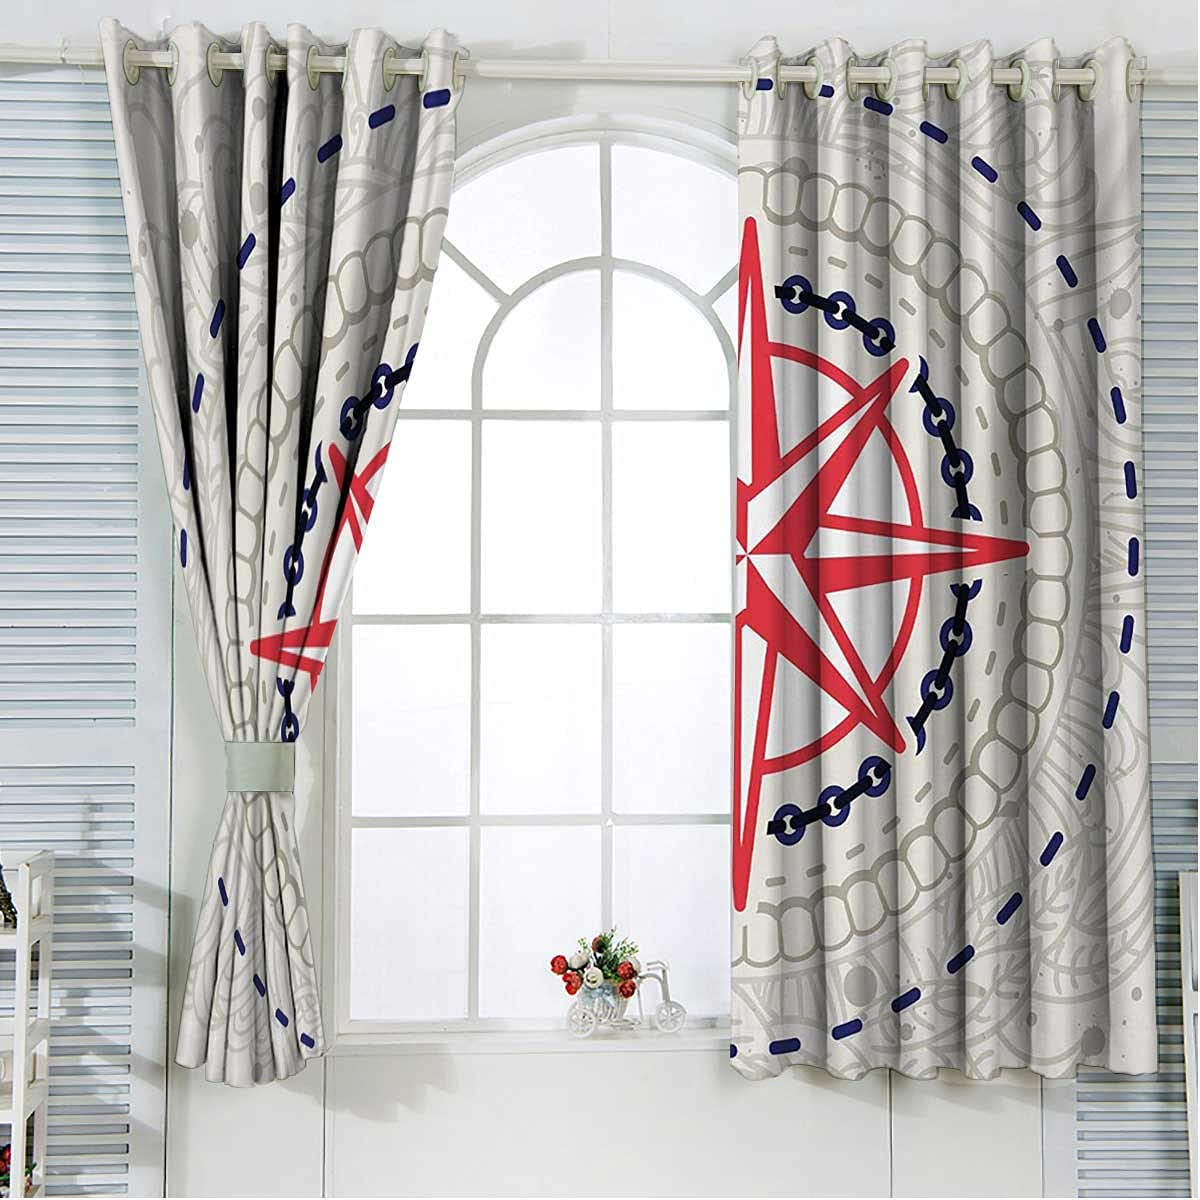 Compass free shipping High quality new Farmhouse Curtains 72 Inch Length Grey Pink Bla Hot Blue